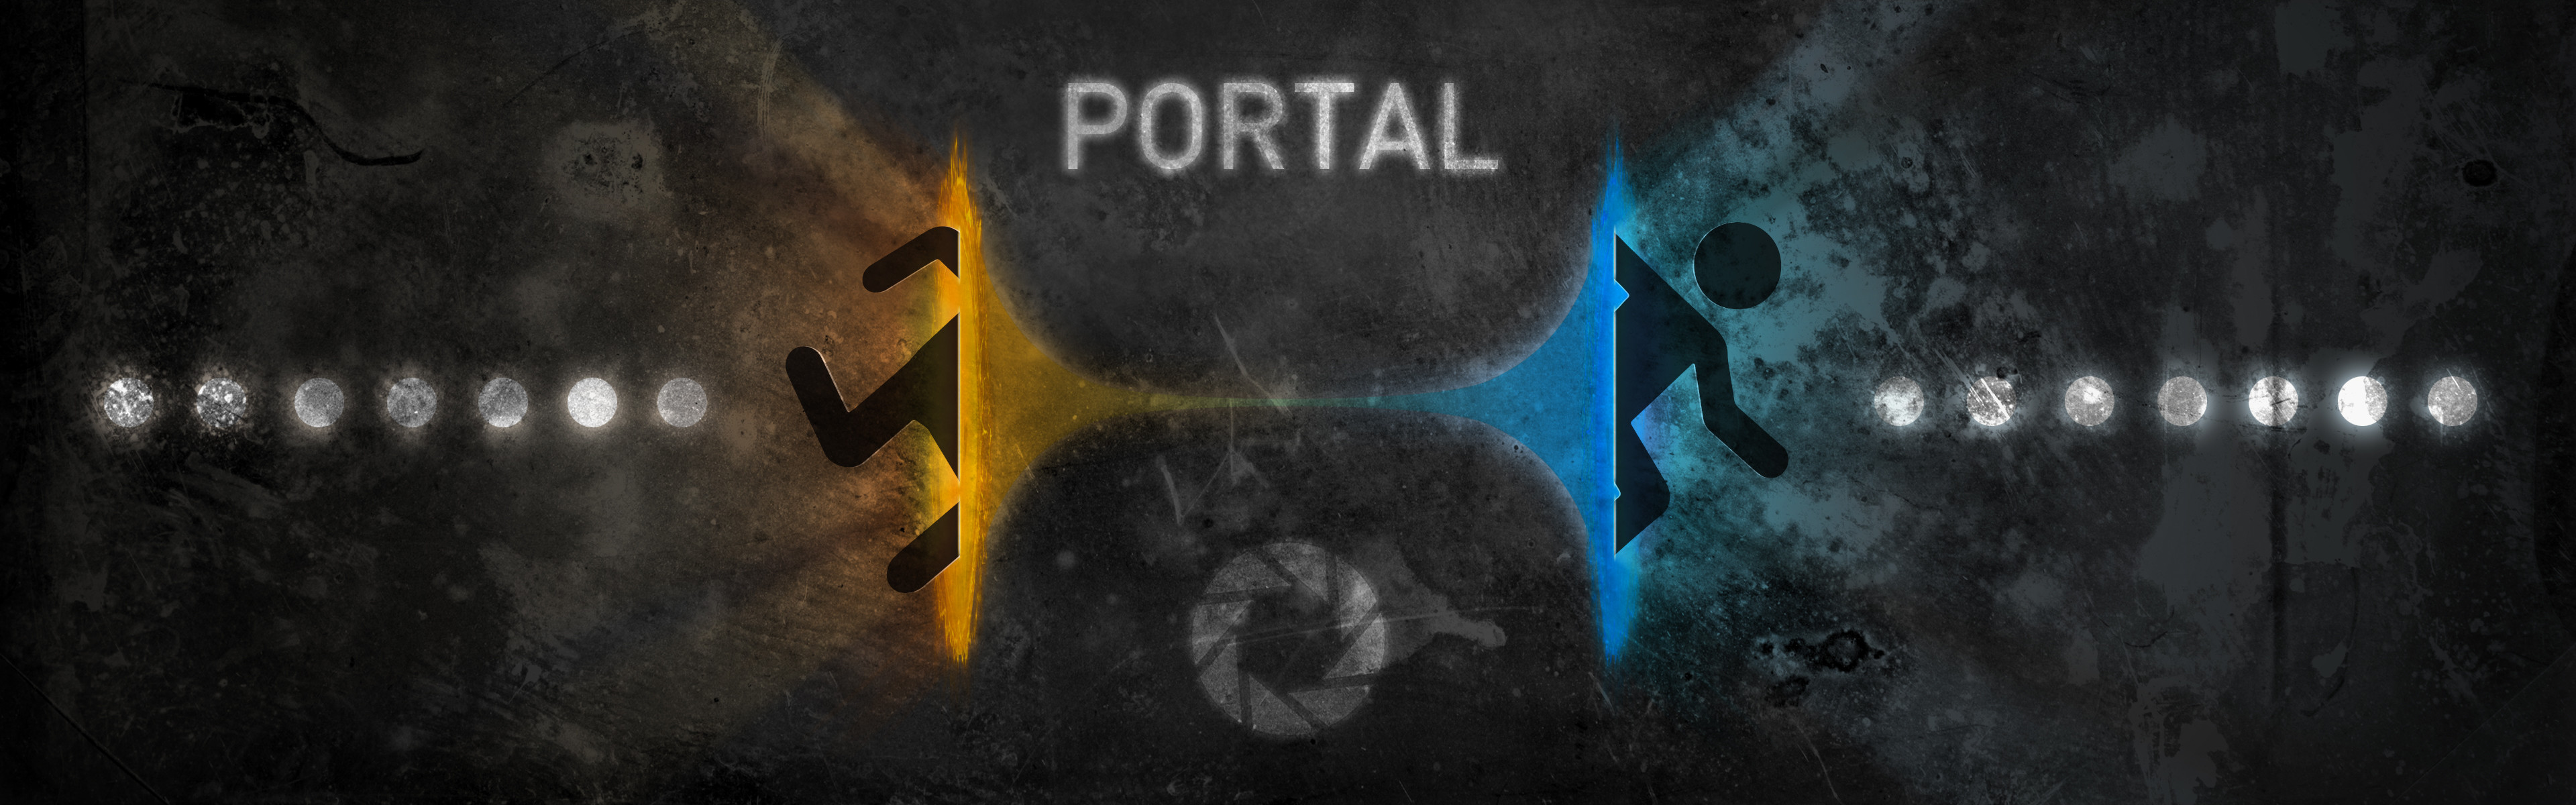 Portal Wallpaper Dual Screen 45 Images